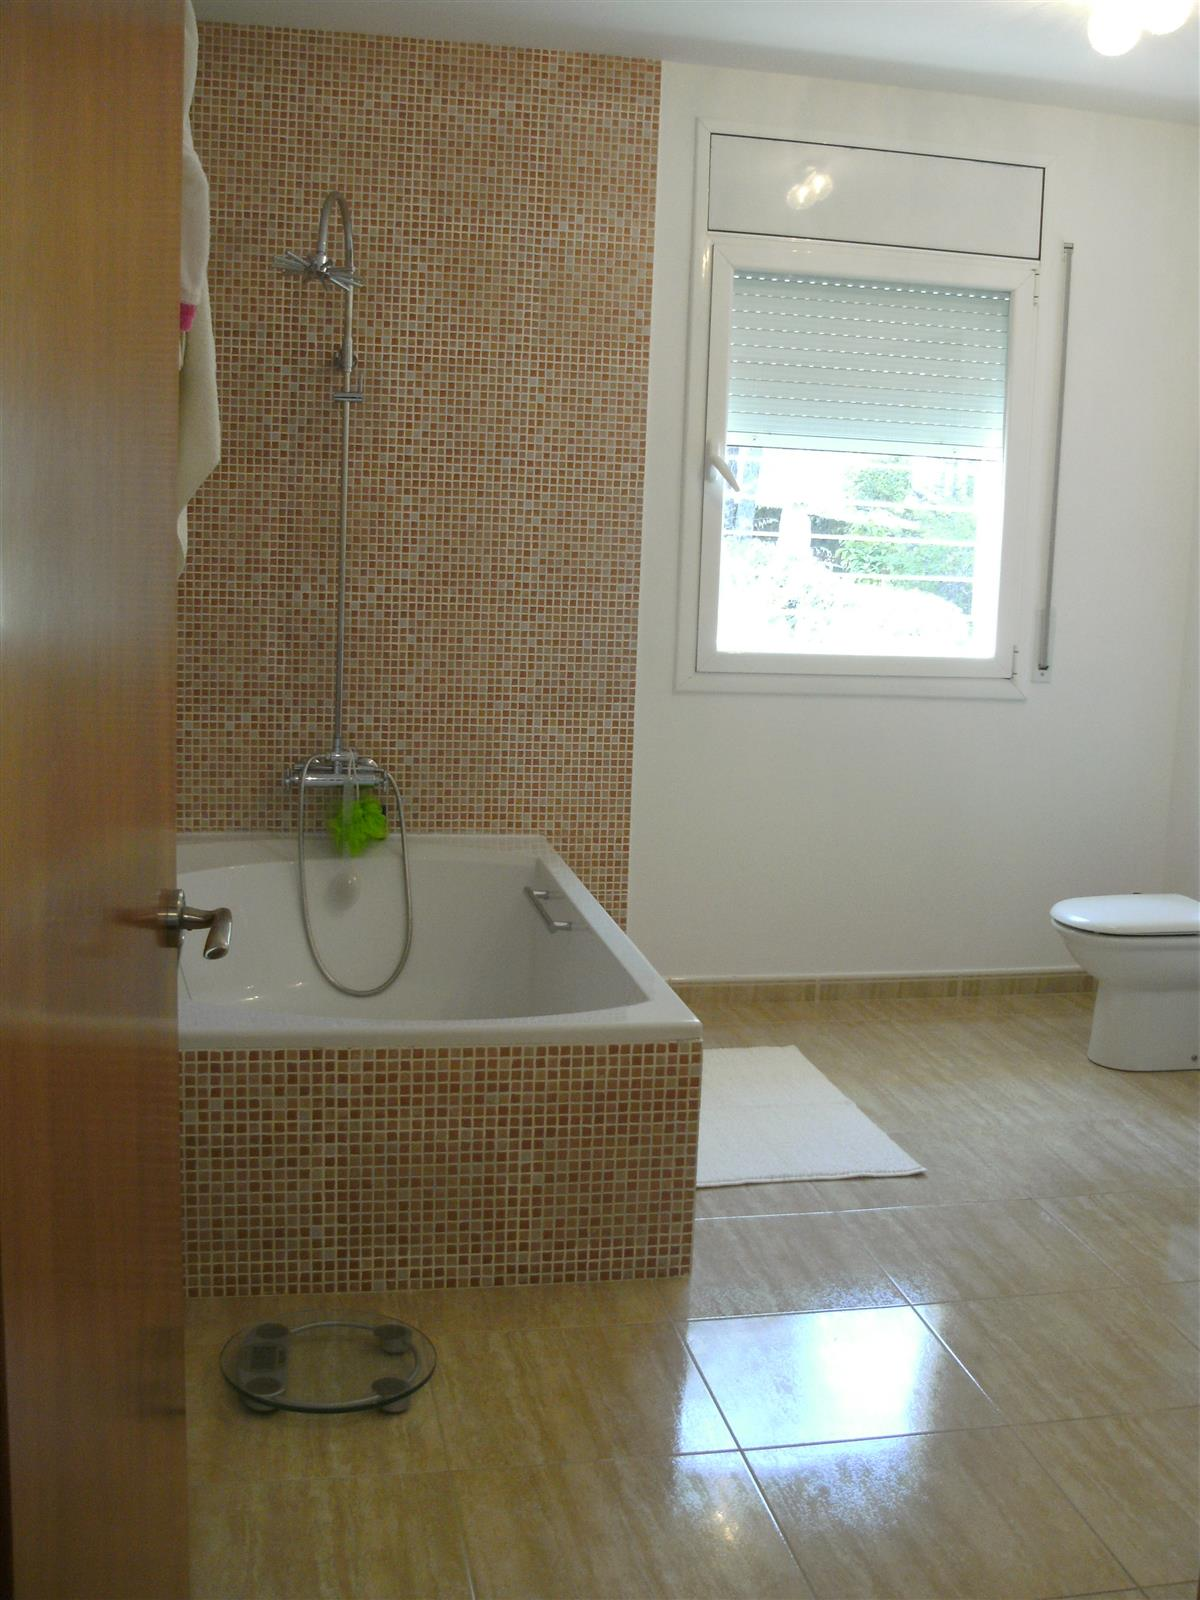 Spacious full equiped bathroom